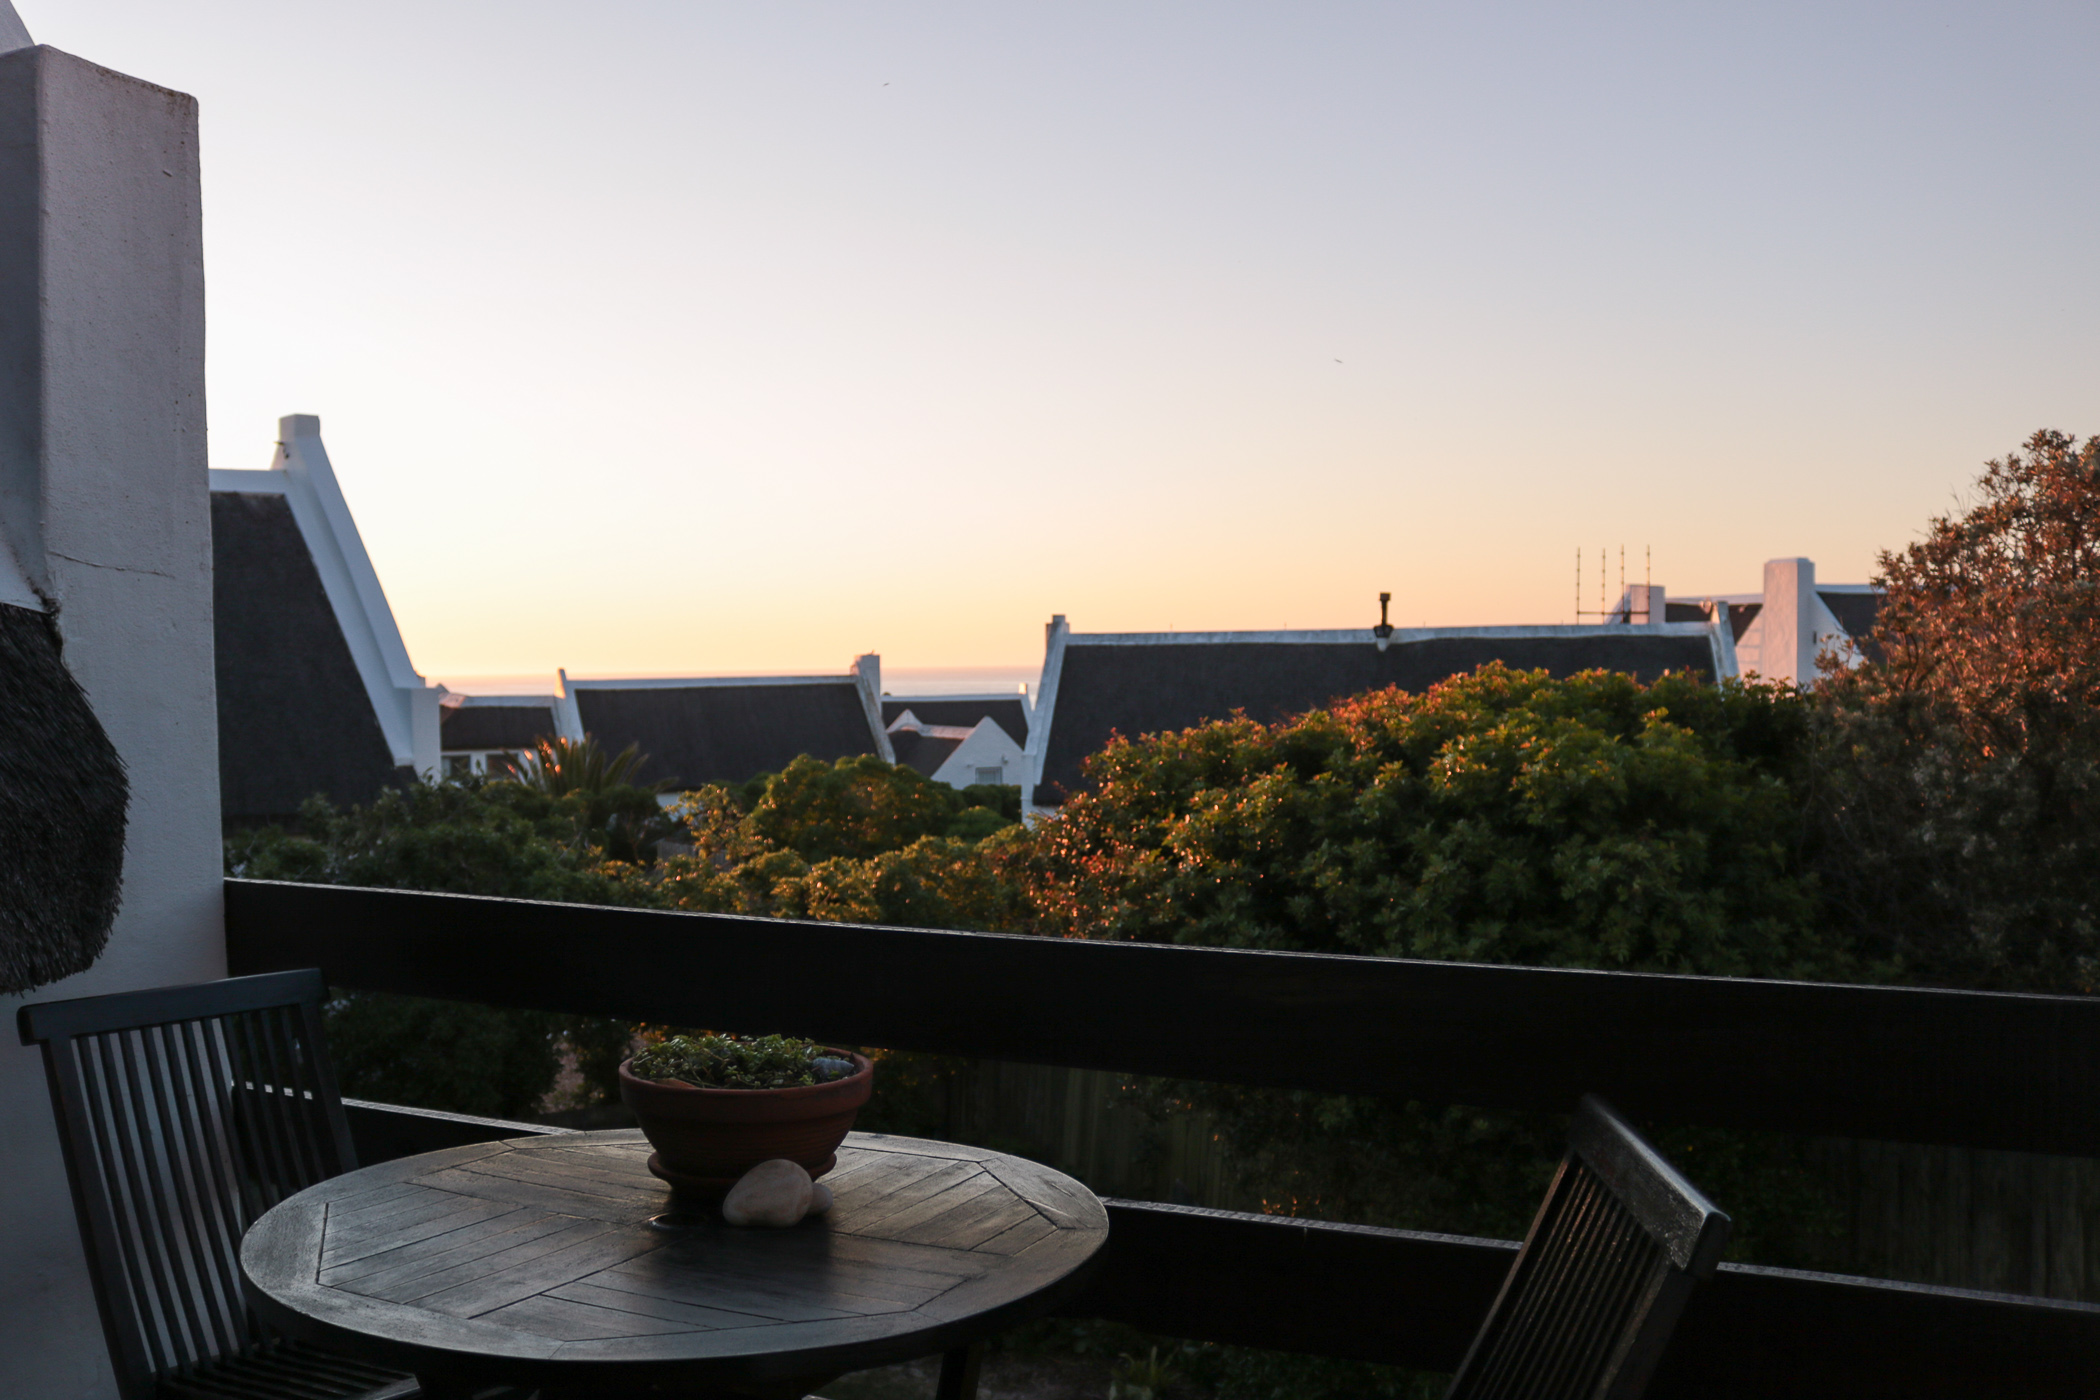 View of the thatch roofs and the ocean at sunset from balcony